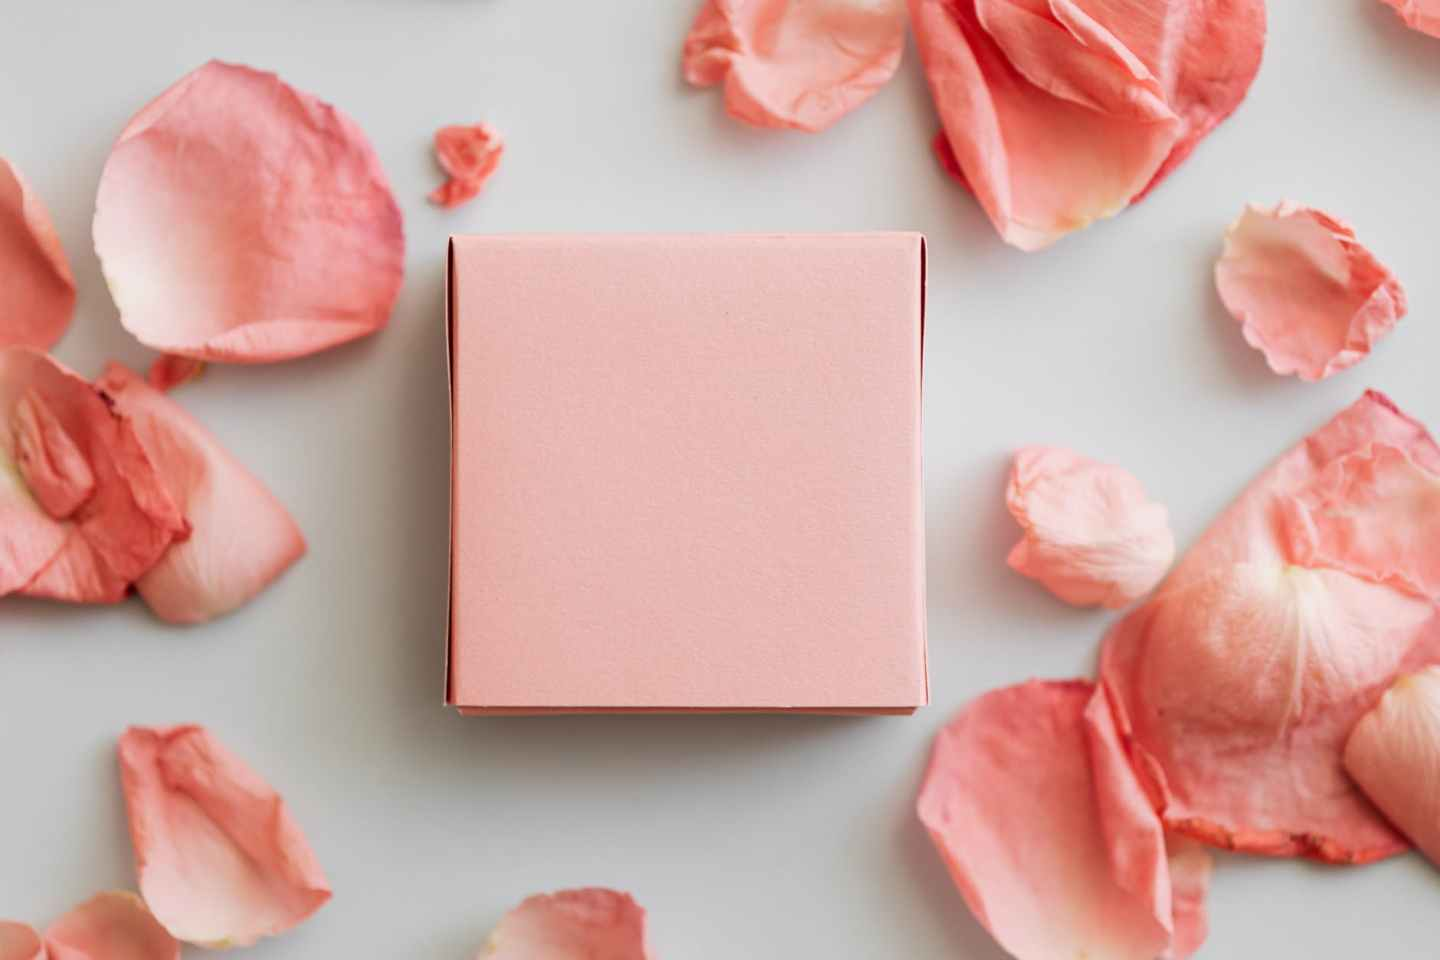 pink gift box and scattered petals